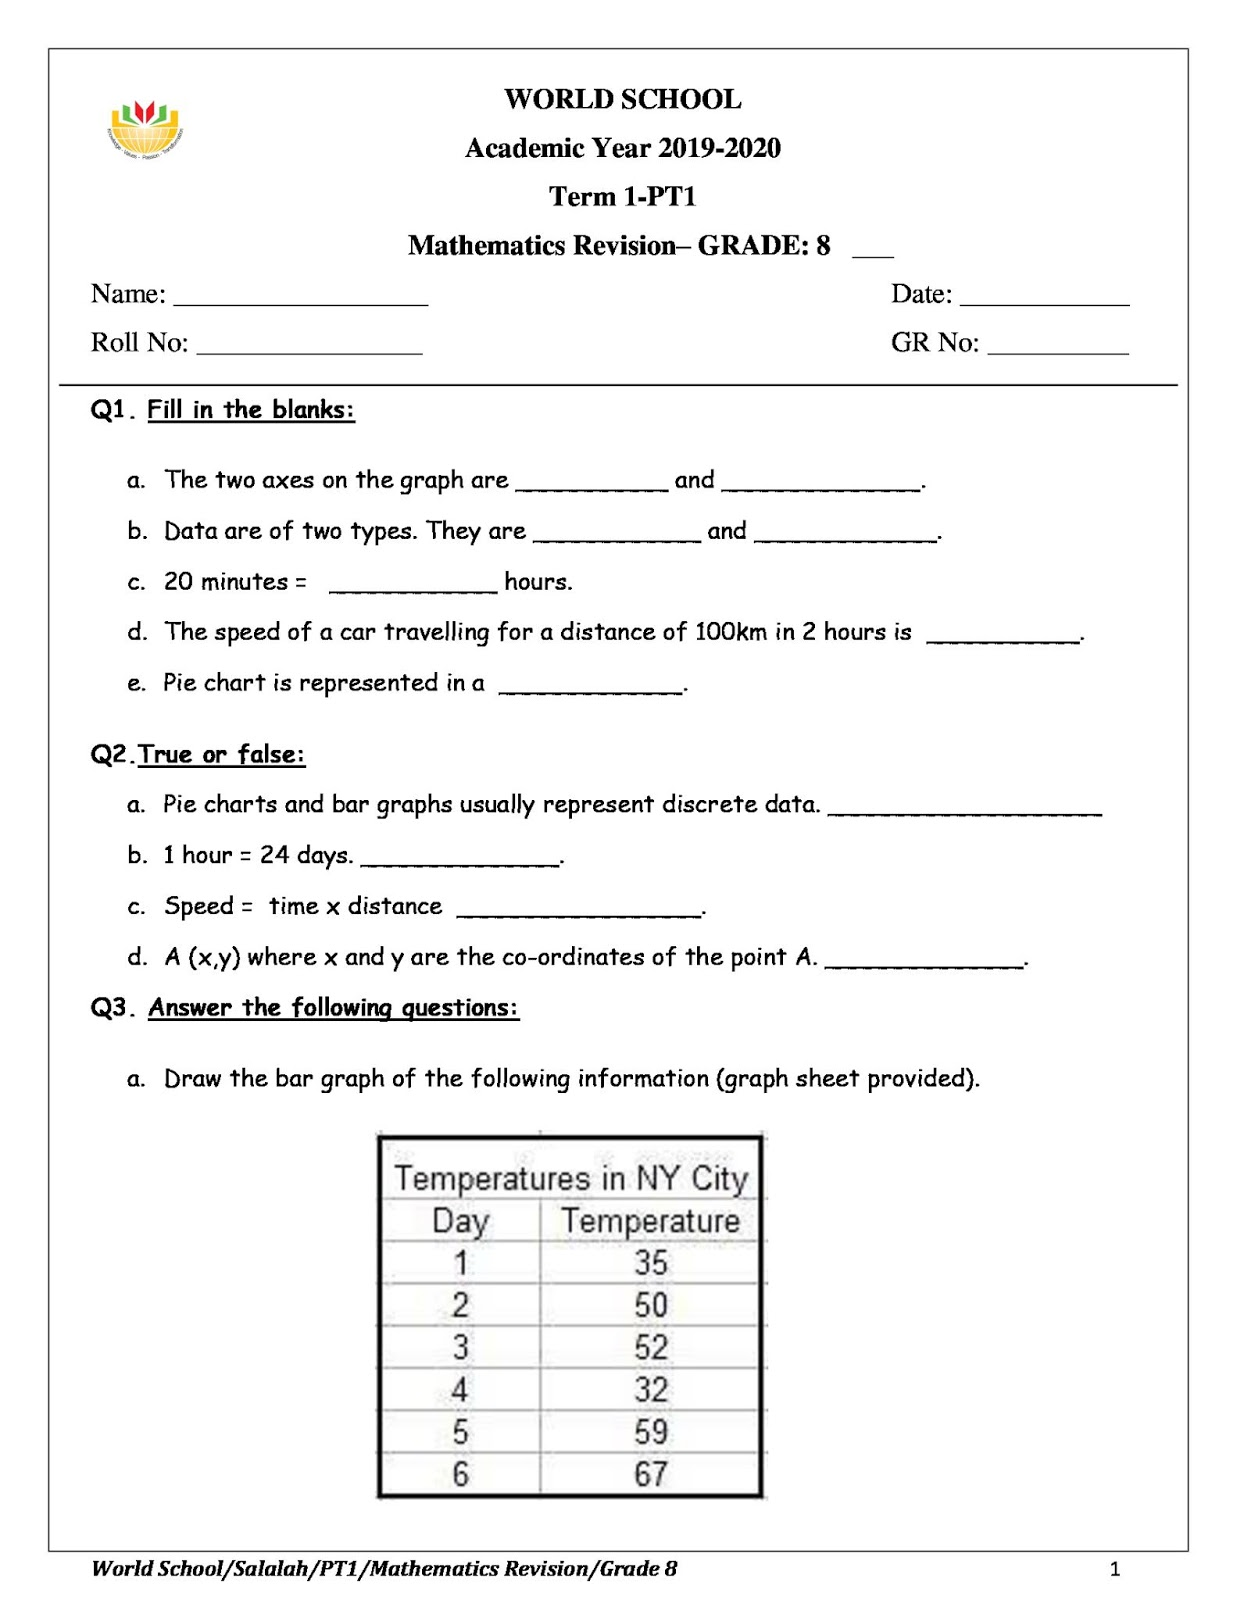 WORLD SCHOOL OMAN: Revision Worksheet for Grade 8 as on 03-10-2019 [ 1600 x 1237 Pixel ]